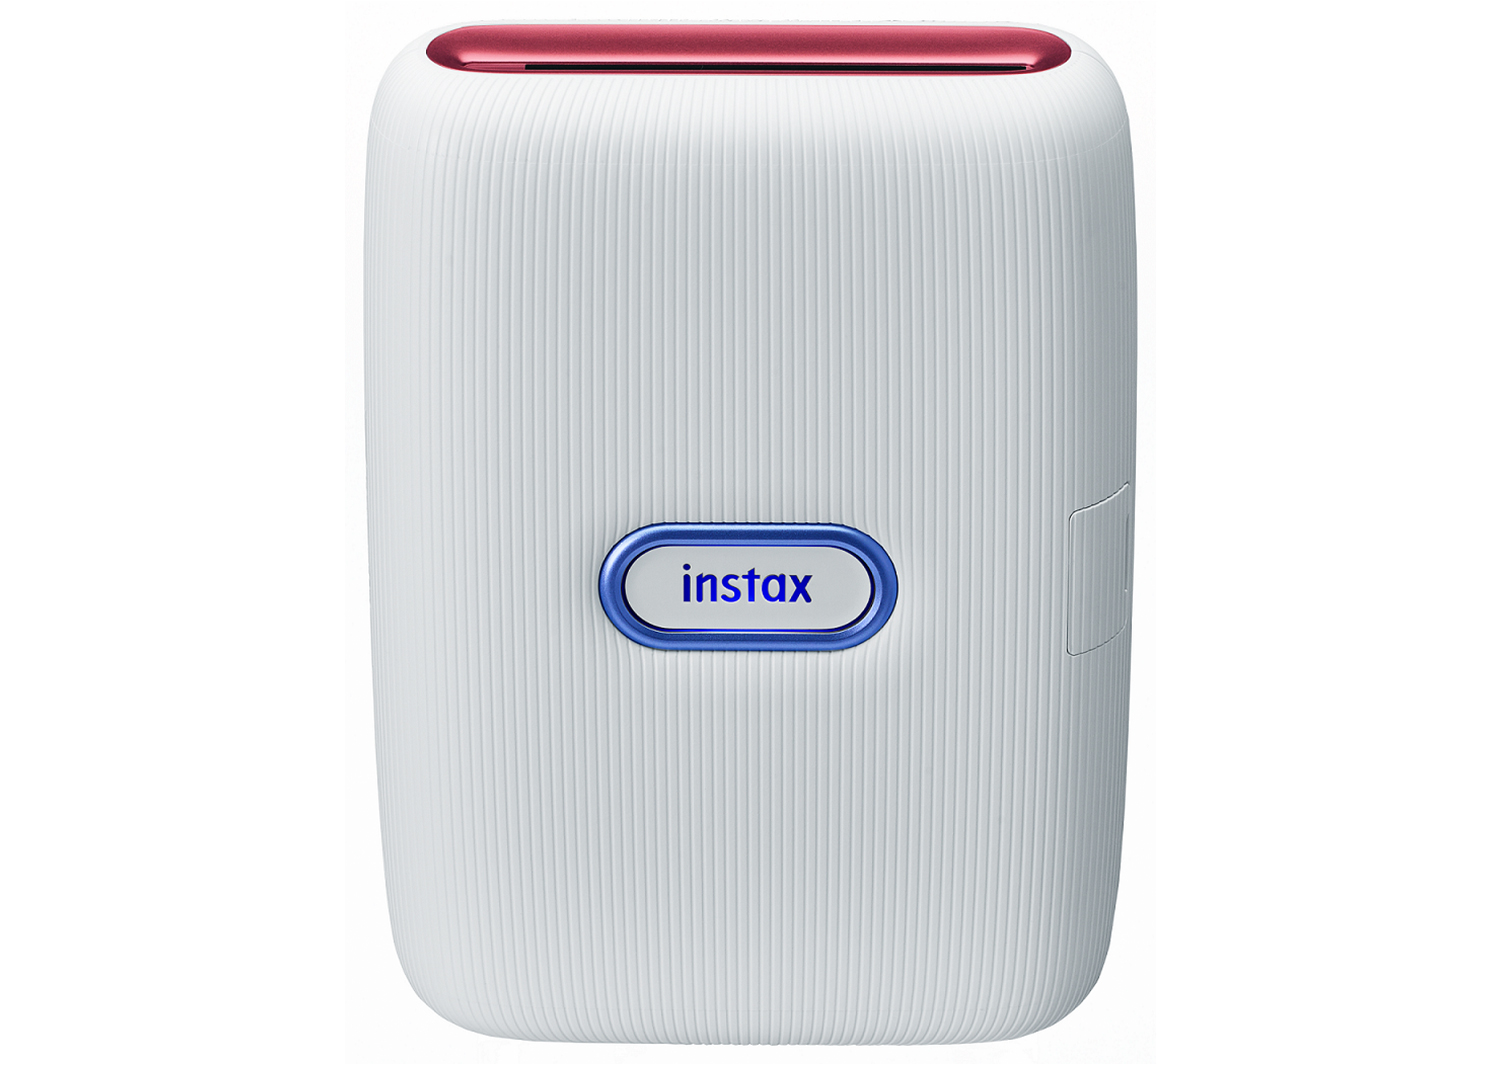 [Product Images]instax mini Link Ash White (Red & Blue)